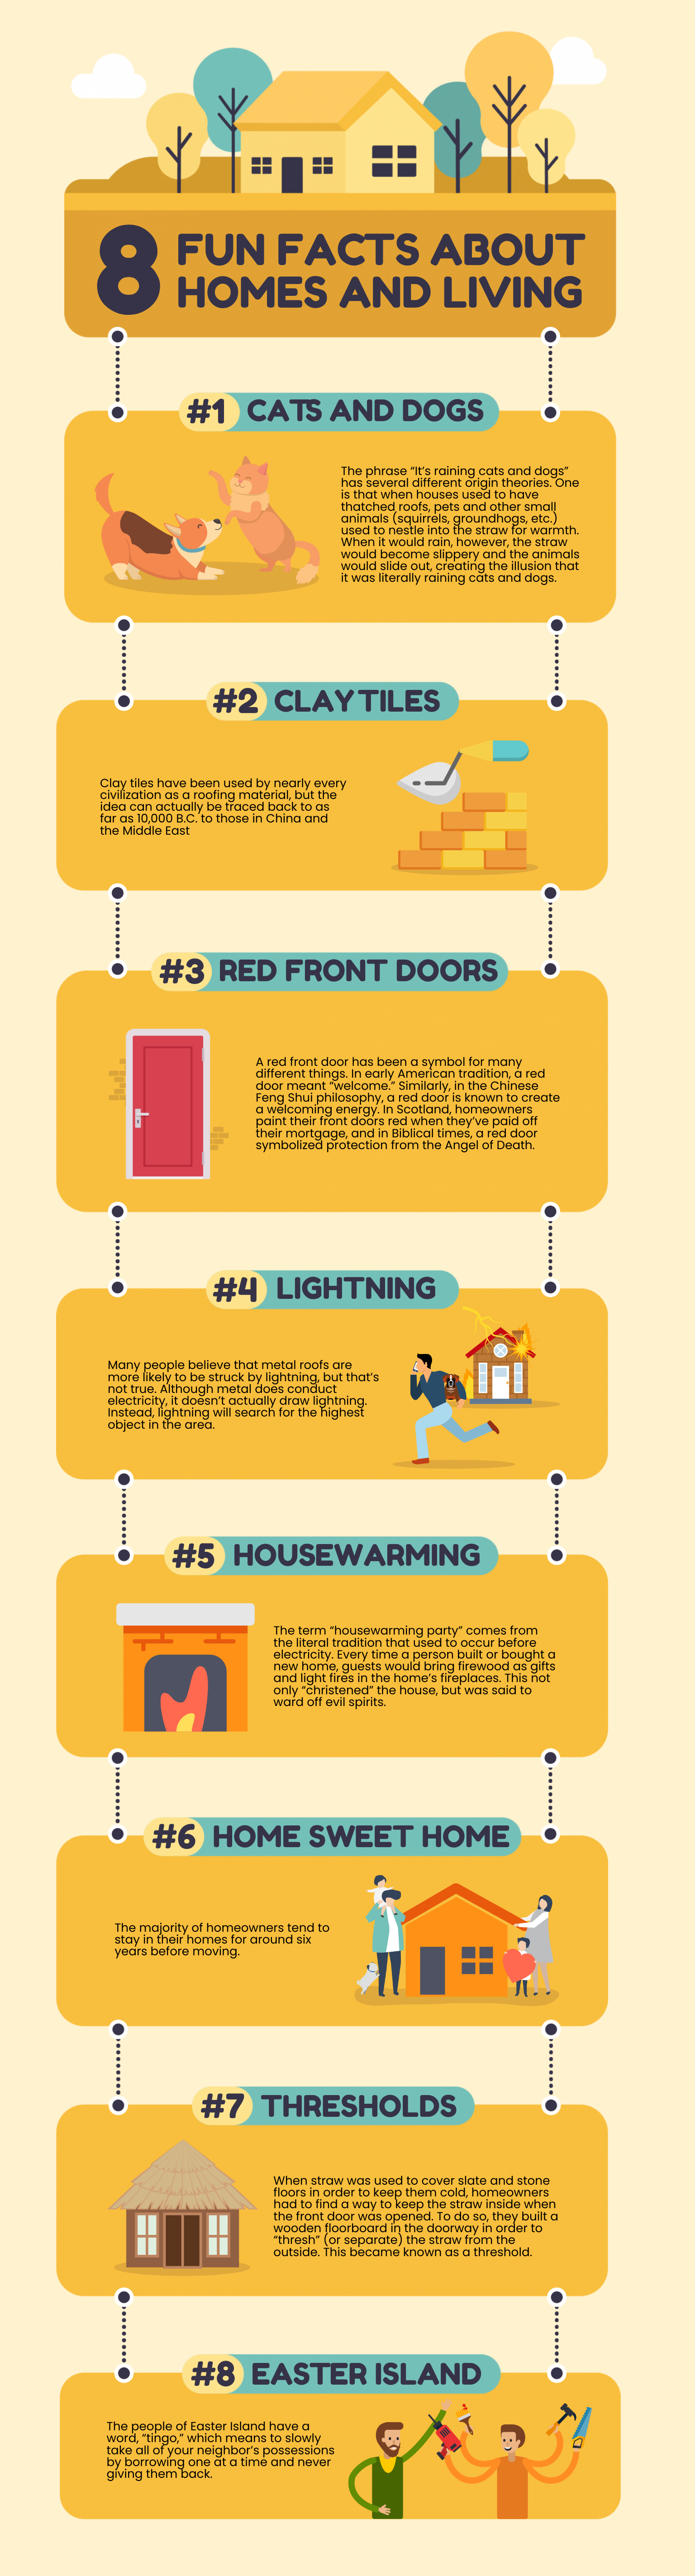 Home living infographic template